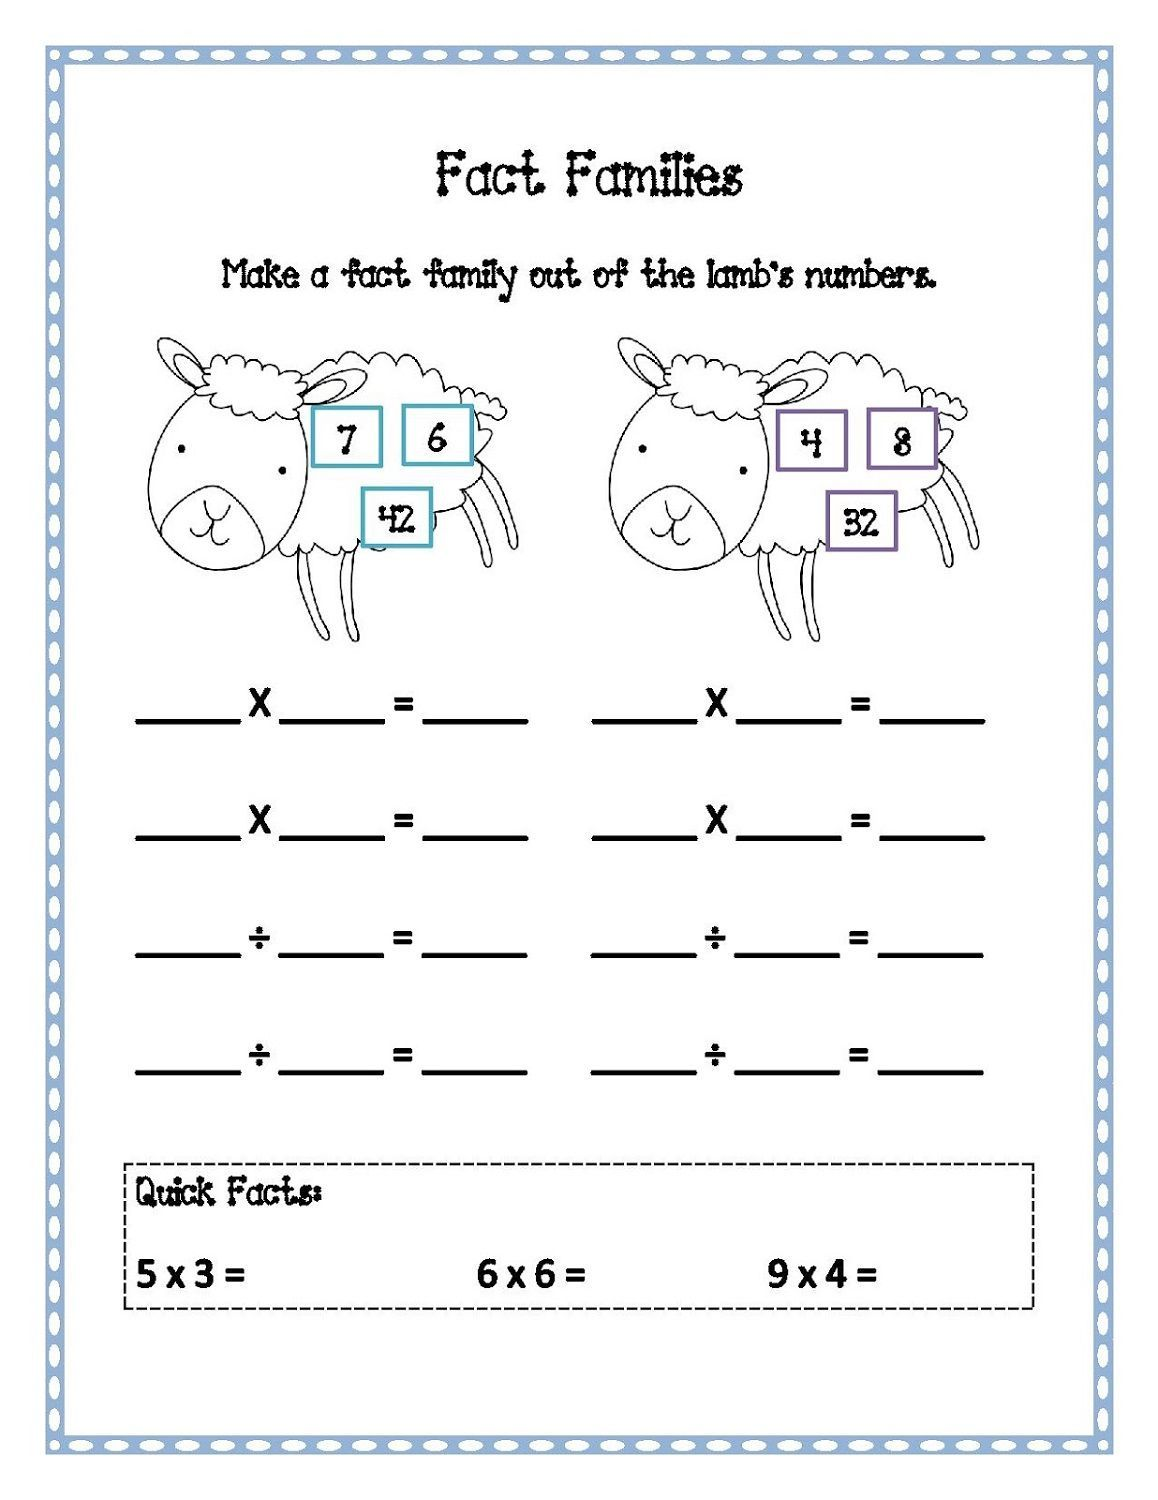 Printable Fact Families Worksheets